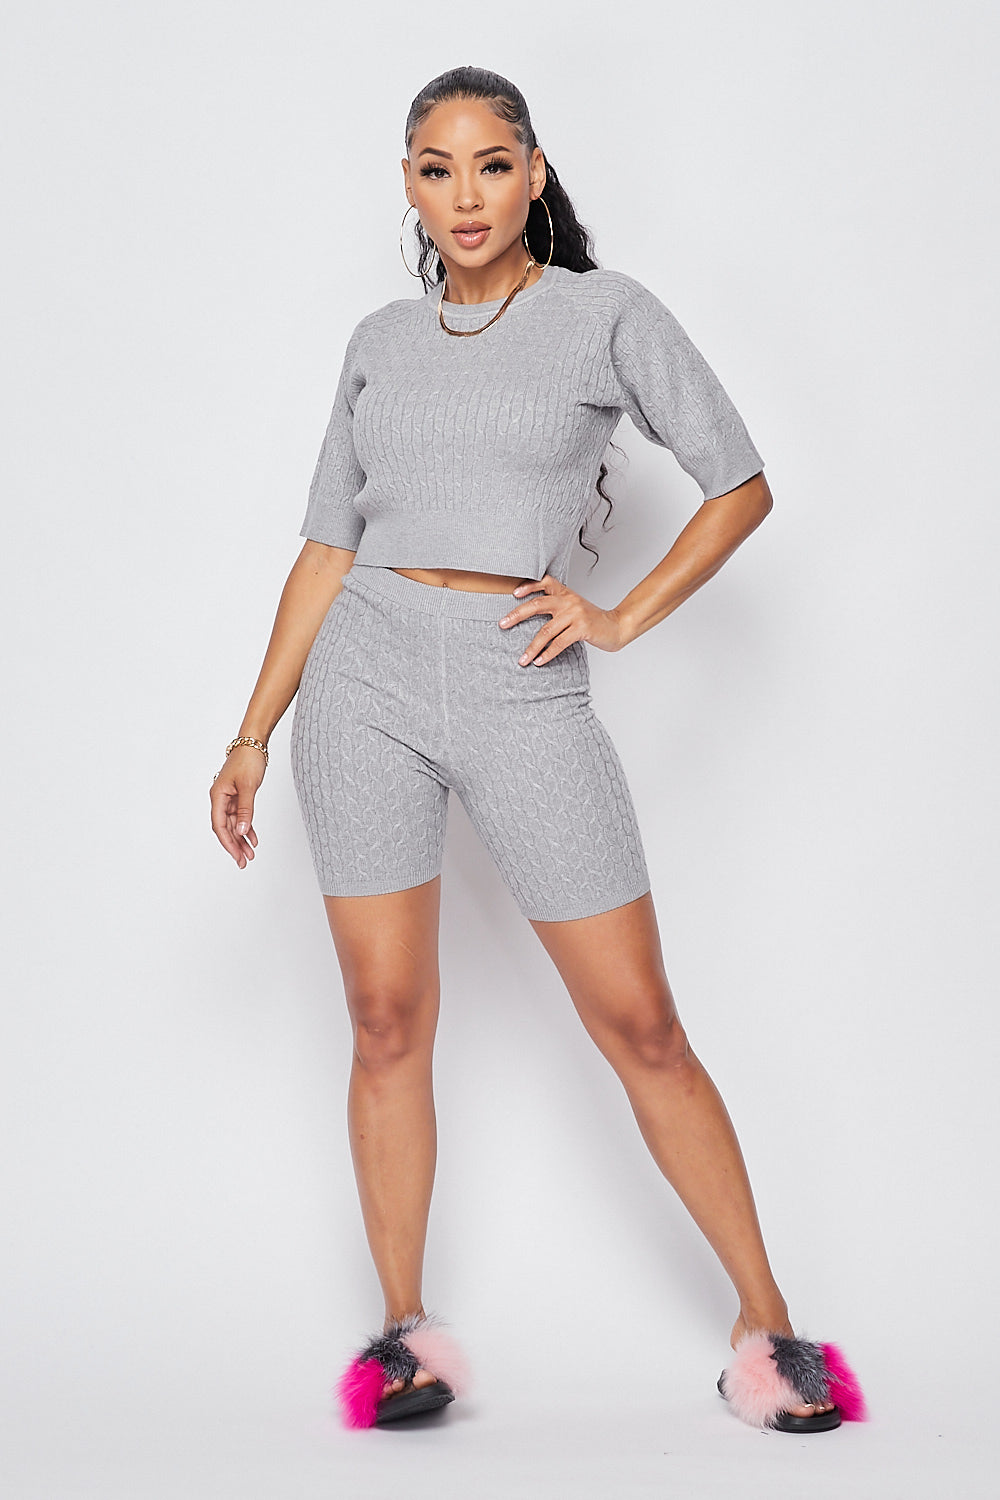 Sexy Knit Crop top w/ High Waist Biker Shorts-H.GREY - Fashion House USA